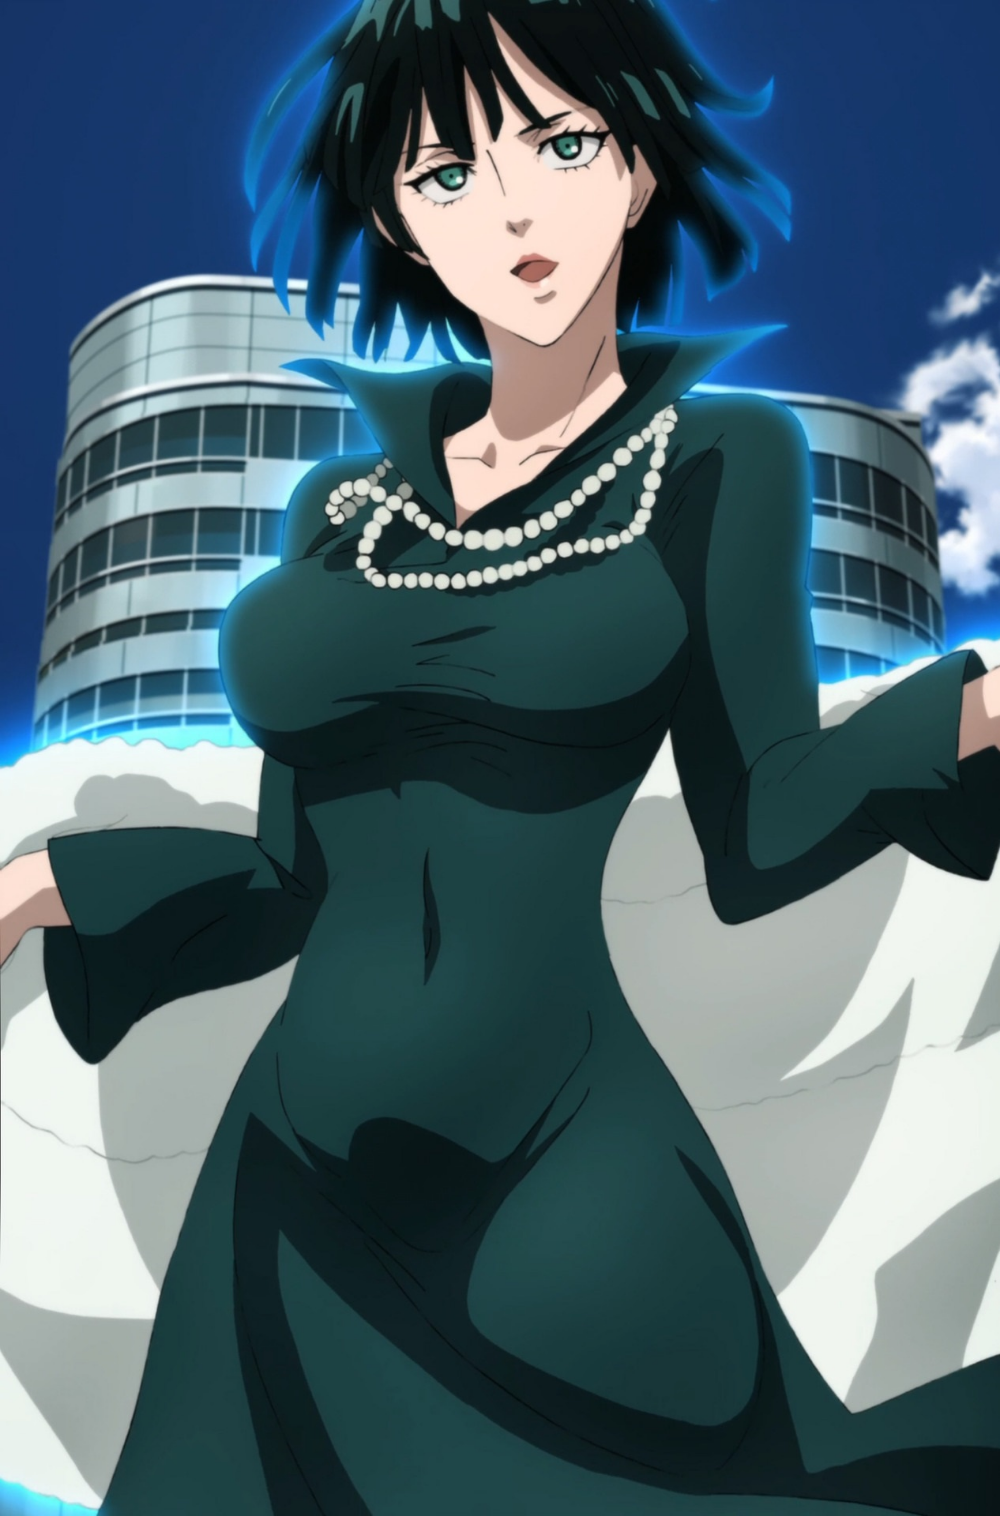 Fubuki One Punch Man season 2 ep 5 by Berganime on